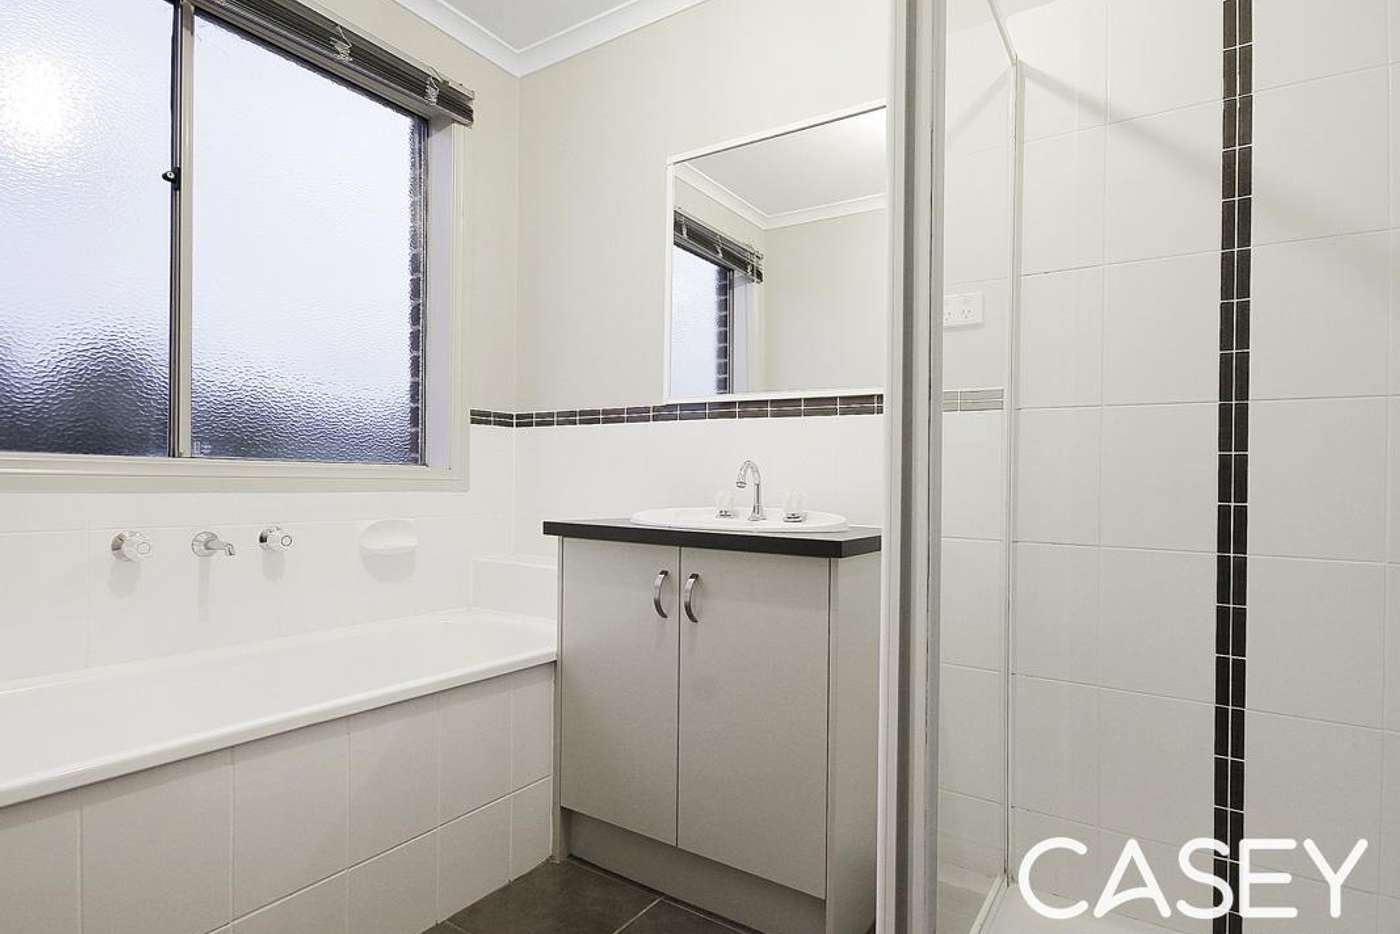 Sixth view of Homely house listing, 68 Tyndall Street, Cranbourne East VIC 3977